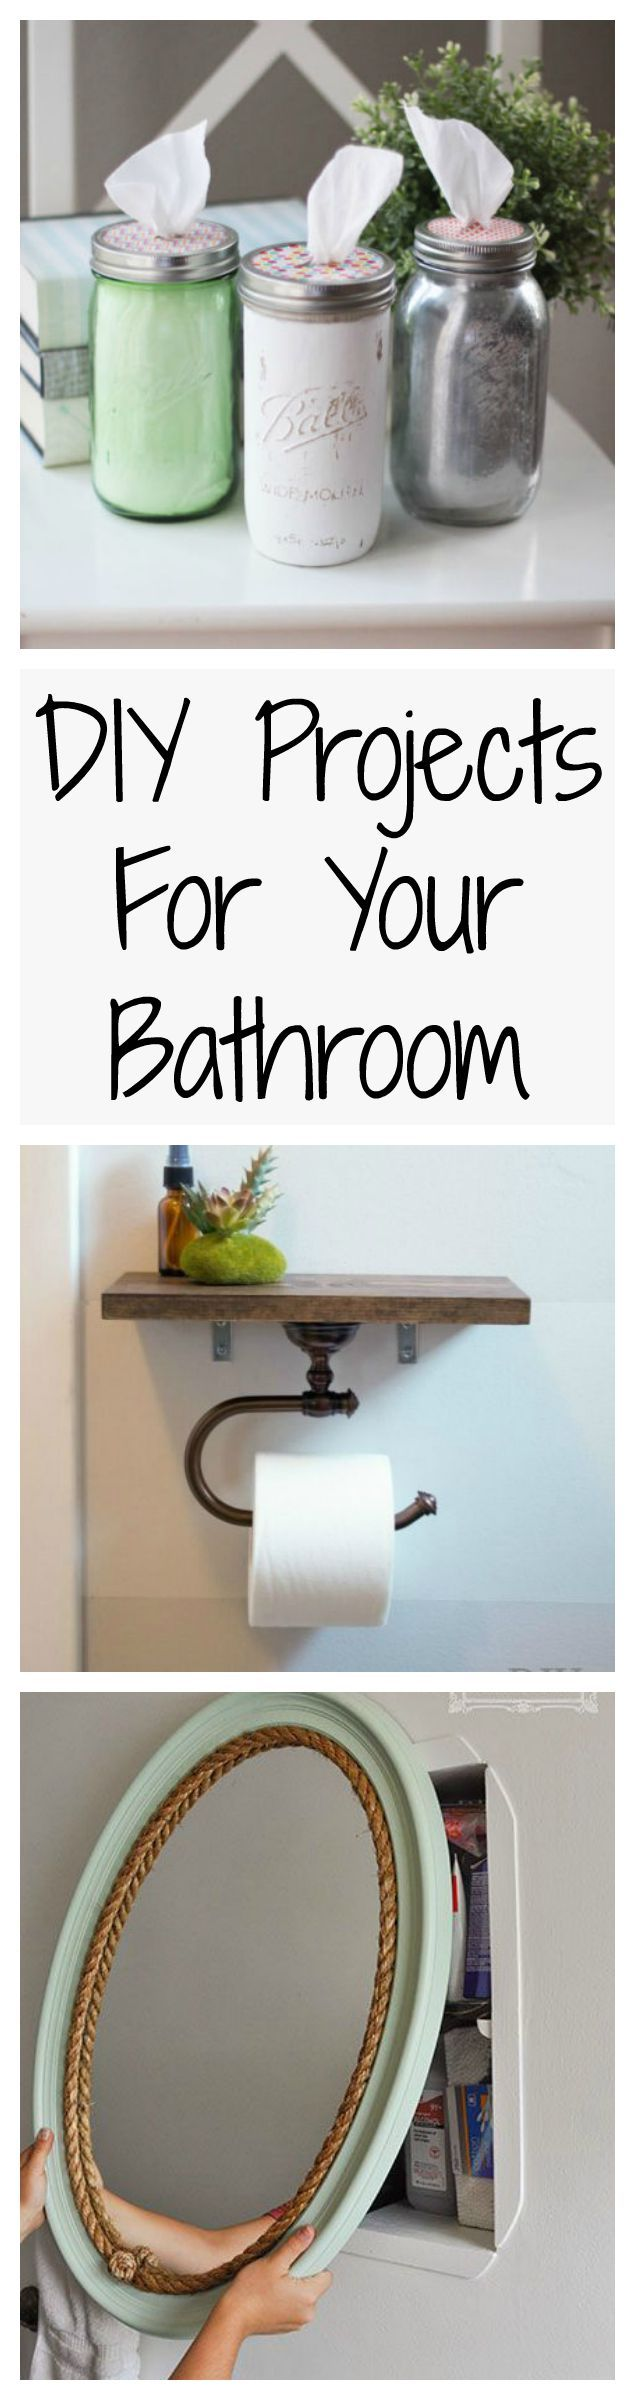 Your bathroom should be just as pretty as all the other rooms in your house, and these easy DIY projects could help make that